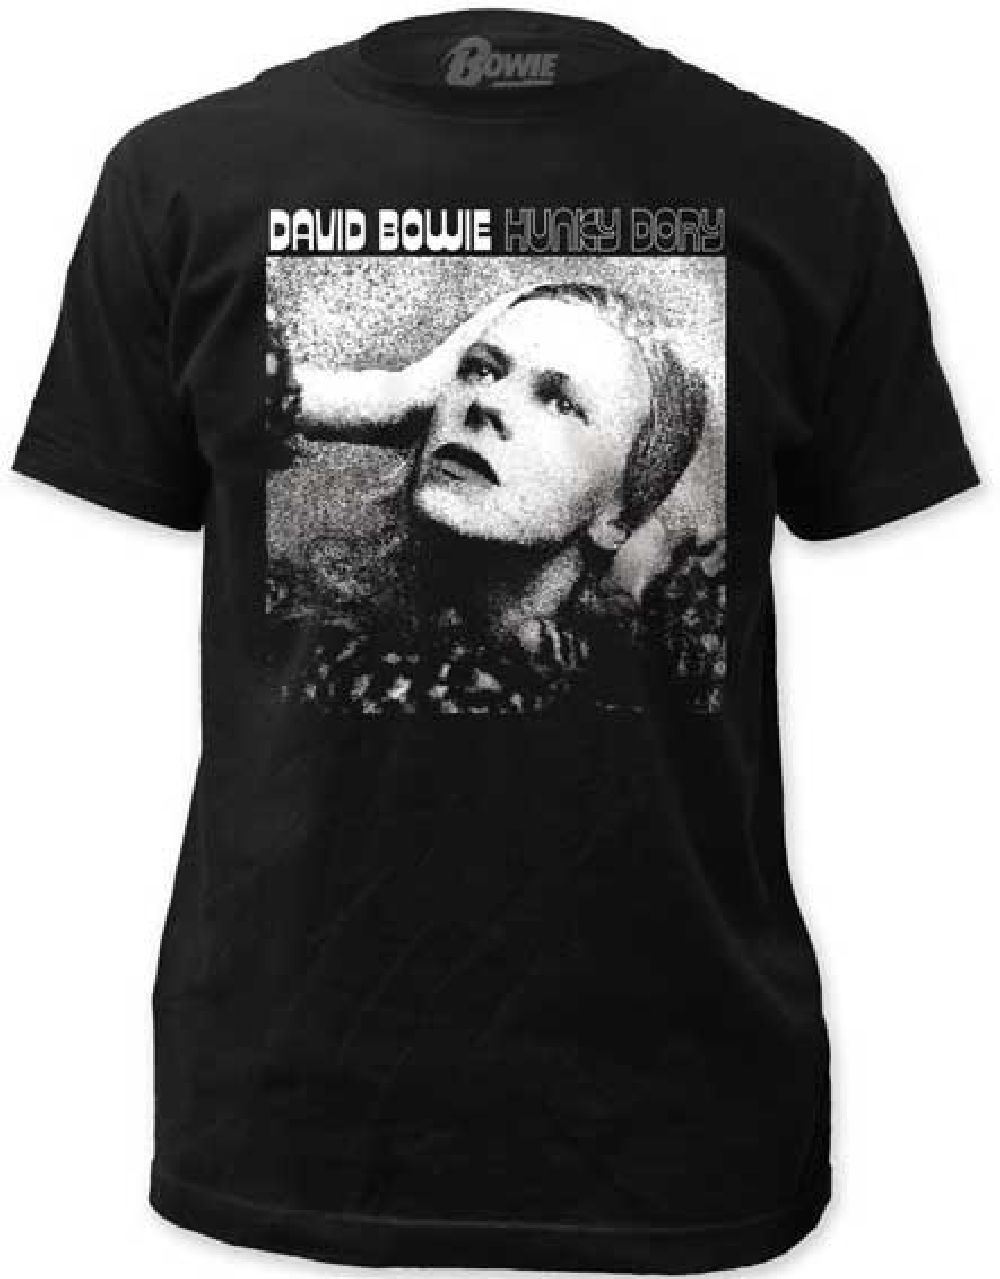 e71faf4f6 This David Bowie tshirt spotlights the album cover artwork from Hunky Dory.  Released in December 1971, Hunky Dory is the fourth studio album by David  Bowie ...